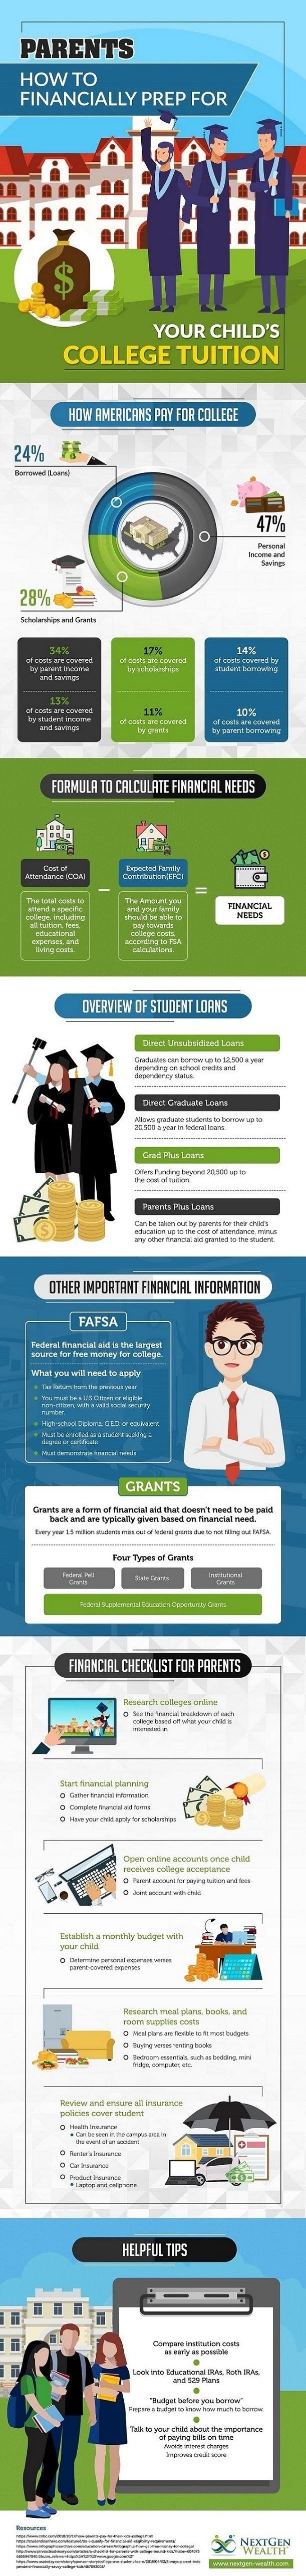 he best advice for college money saving #infographic